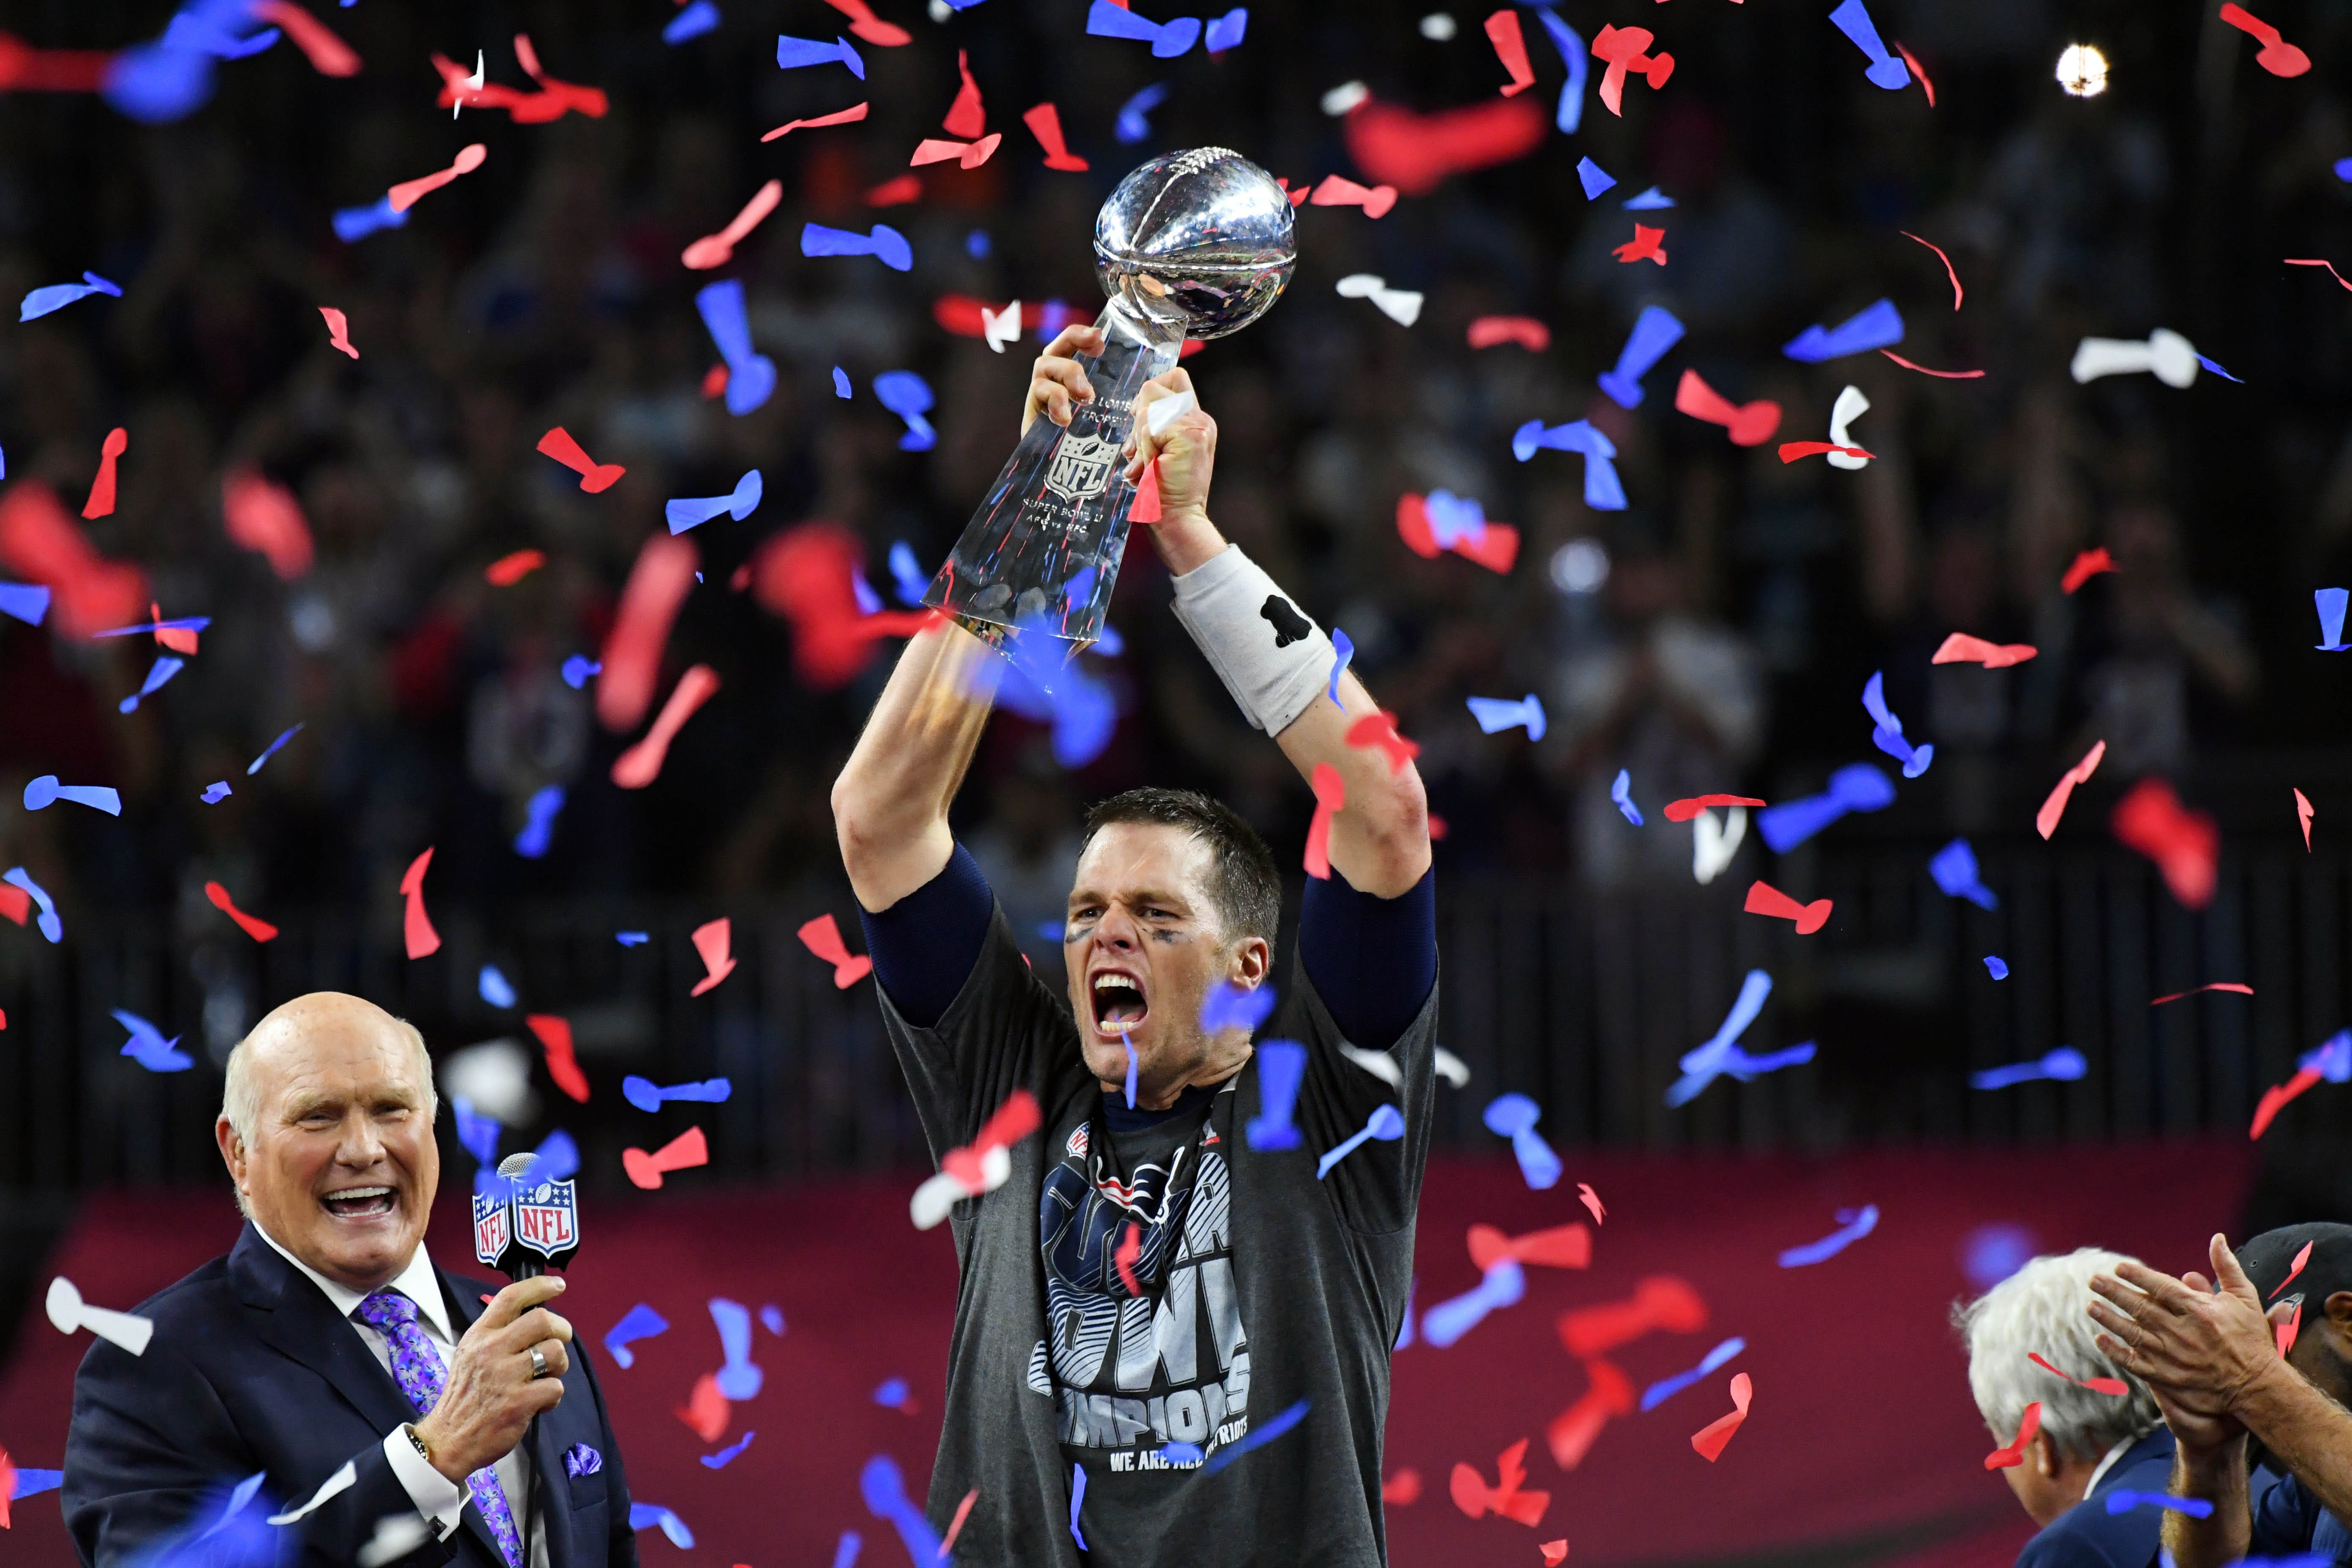 Tom Brady celebrates victory in Super Bowl LI.